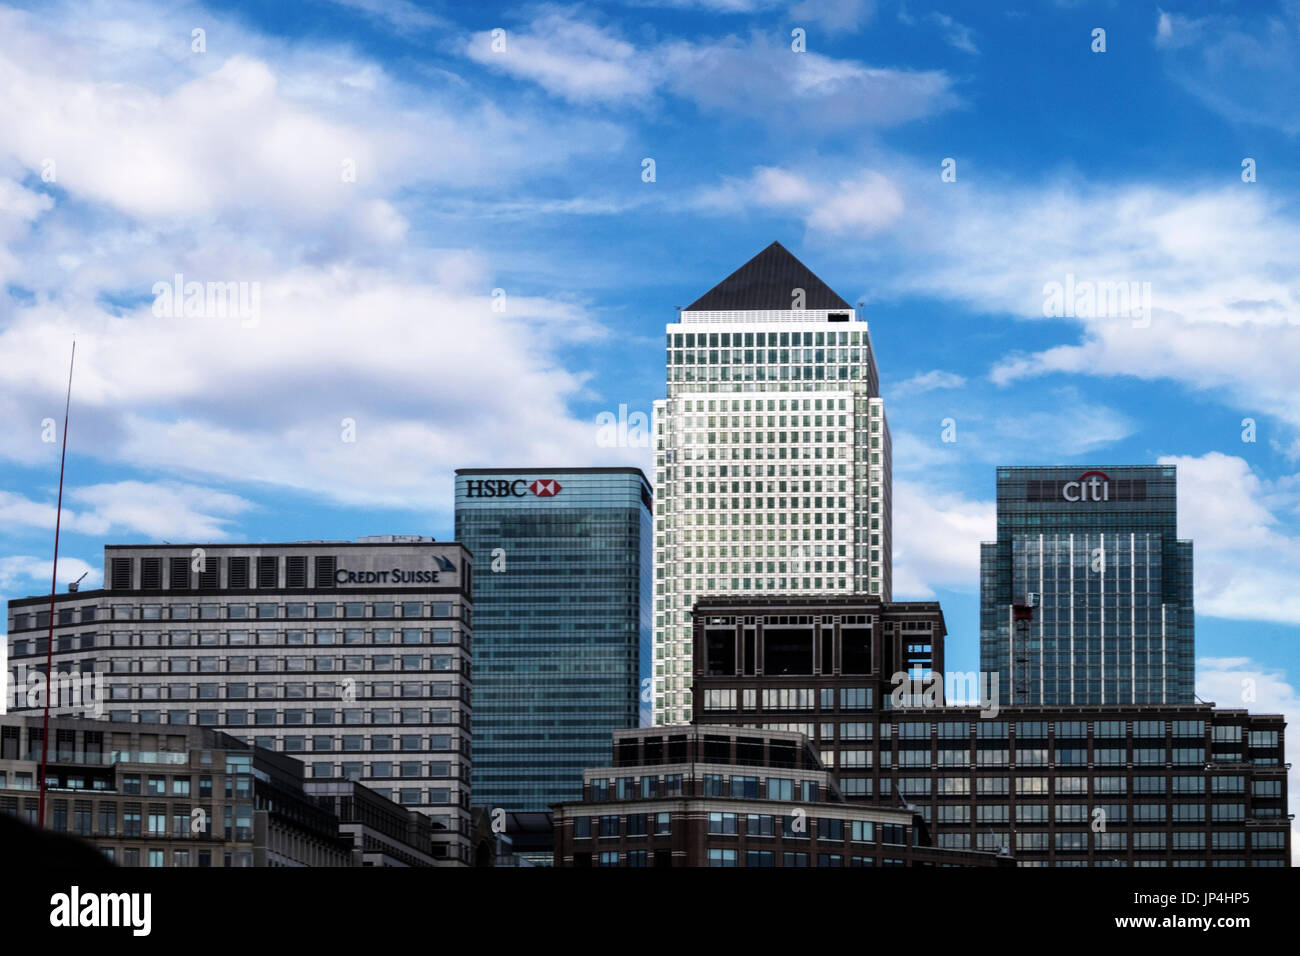 London,Tower Hamlets,Isle of Dogs,Canary Wharf.Modern skyscraper buildings with HSBC,Citi Bank and Credit Suisse Logos.Financial & banking District - Stock Image